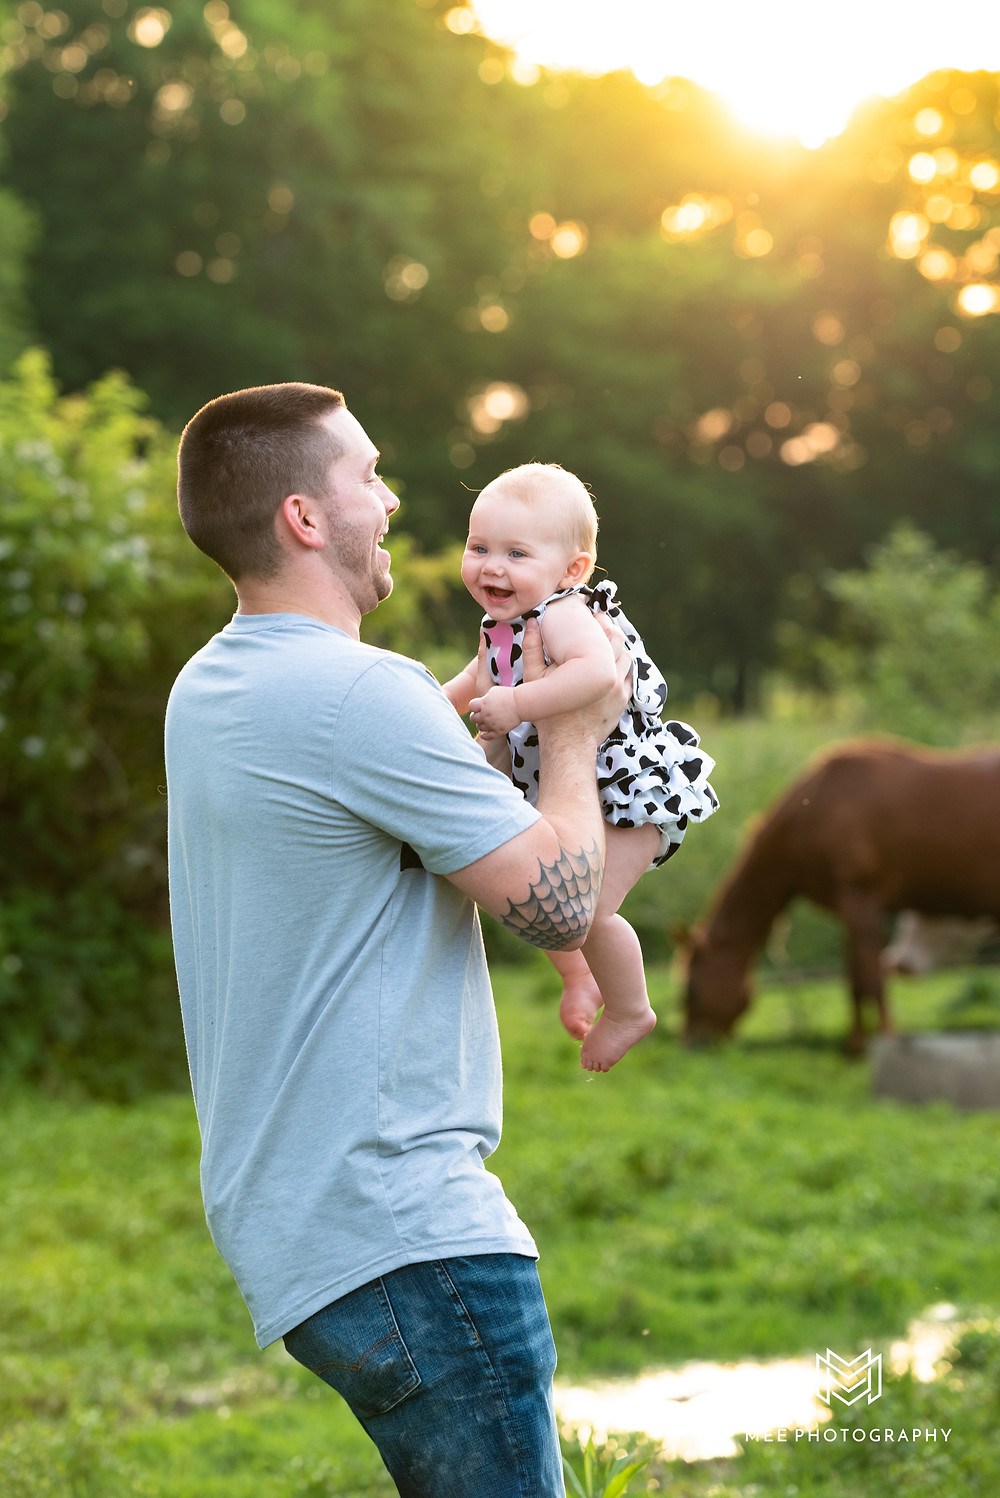 Dad holding baby girl in the air during sunset in a cow pasture in New Cumberland, WV